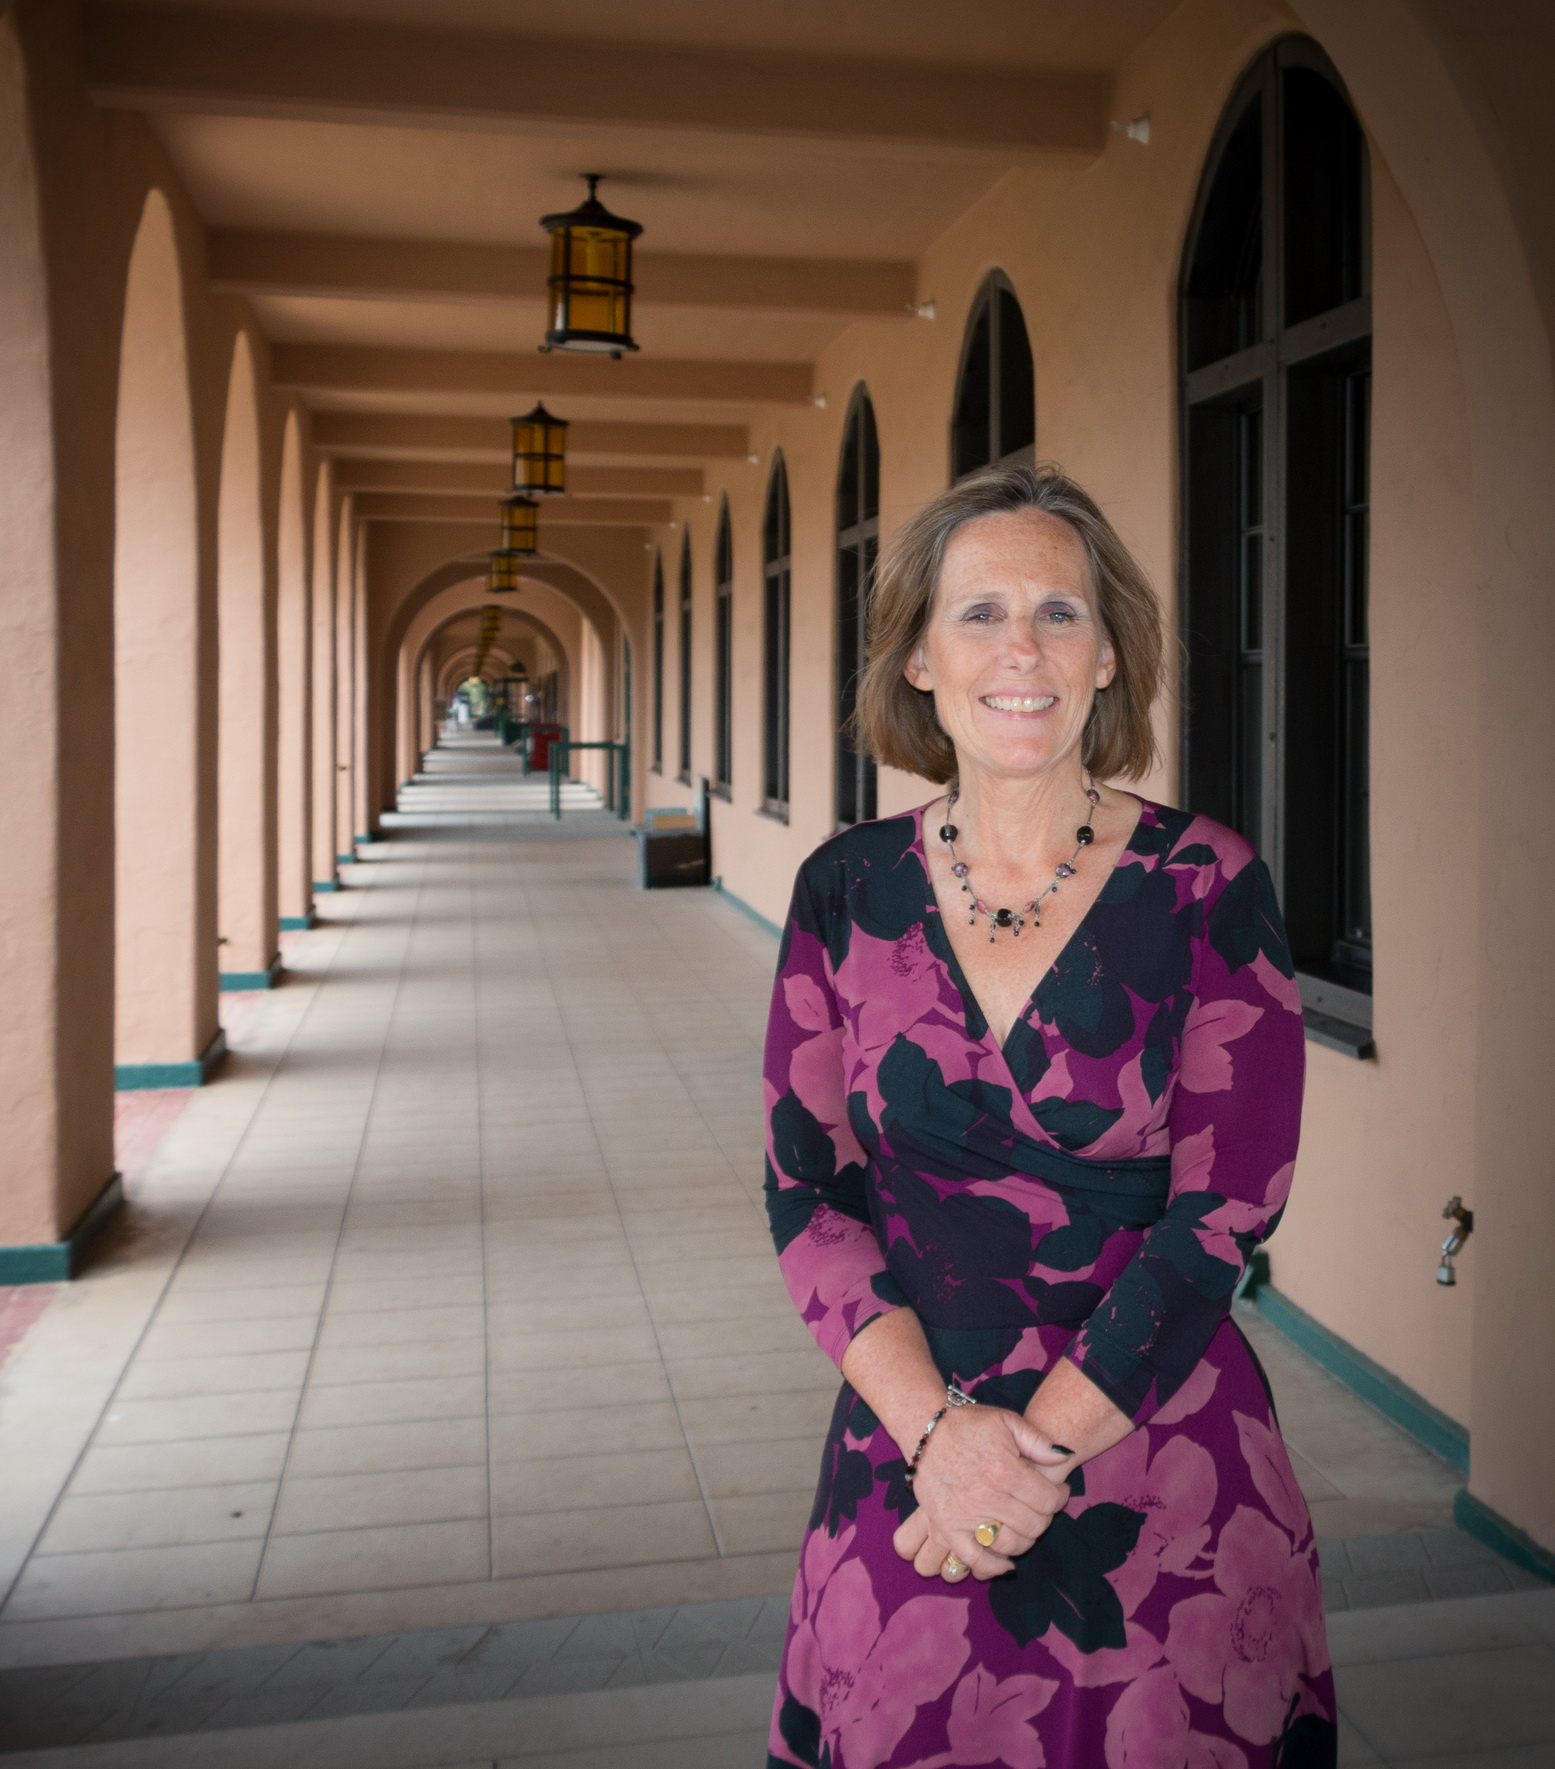 A San Diego native, Lisa Johnson previously was executive manager of the South Bay Family YMCA.